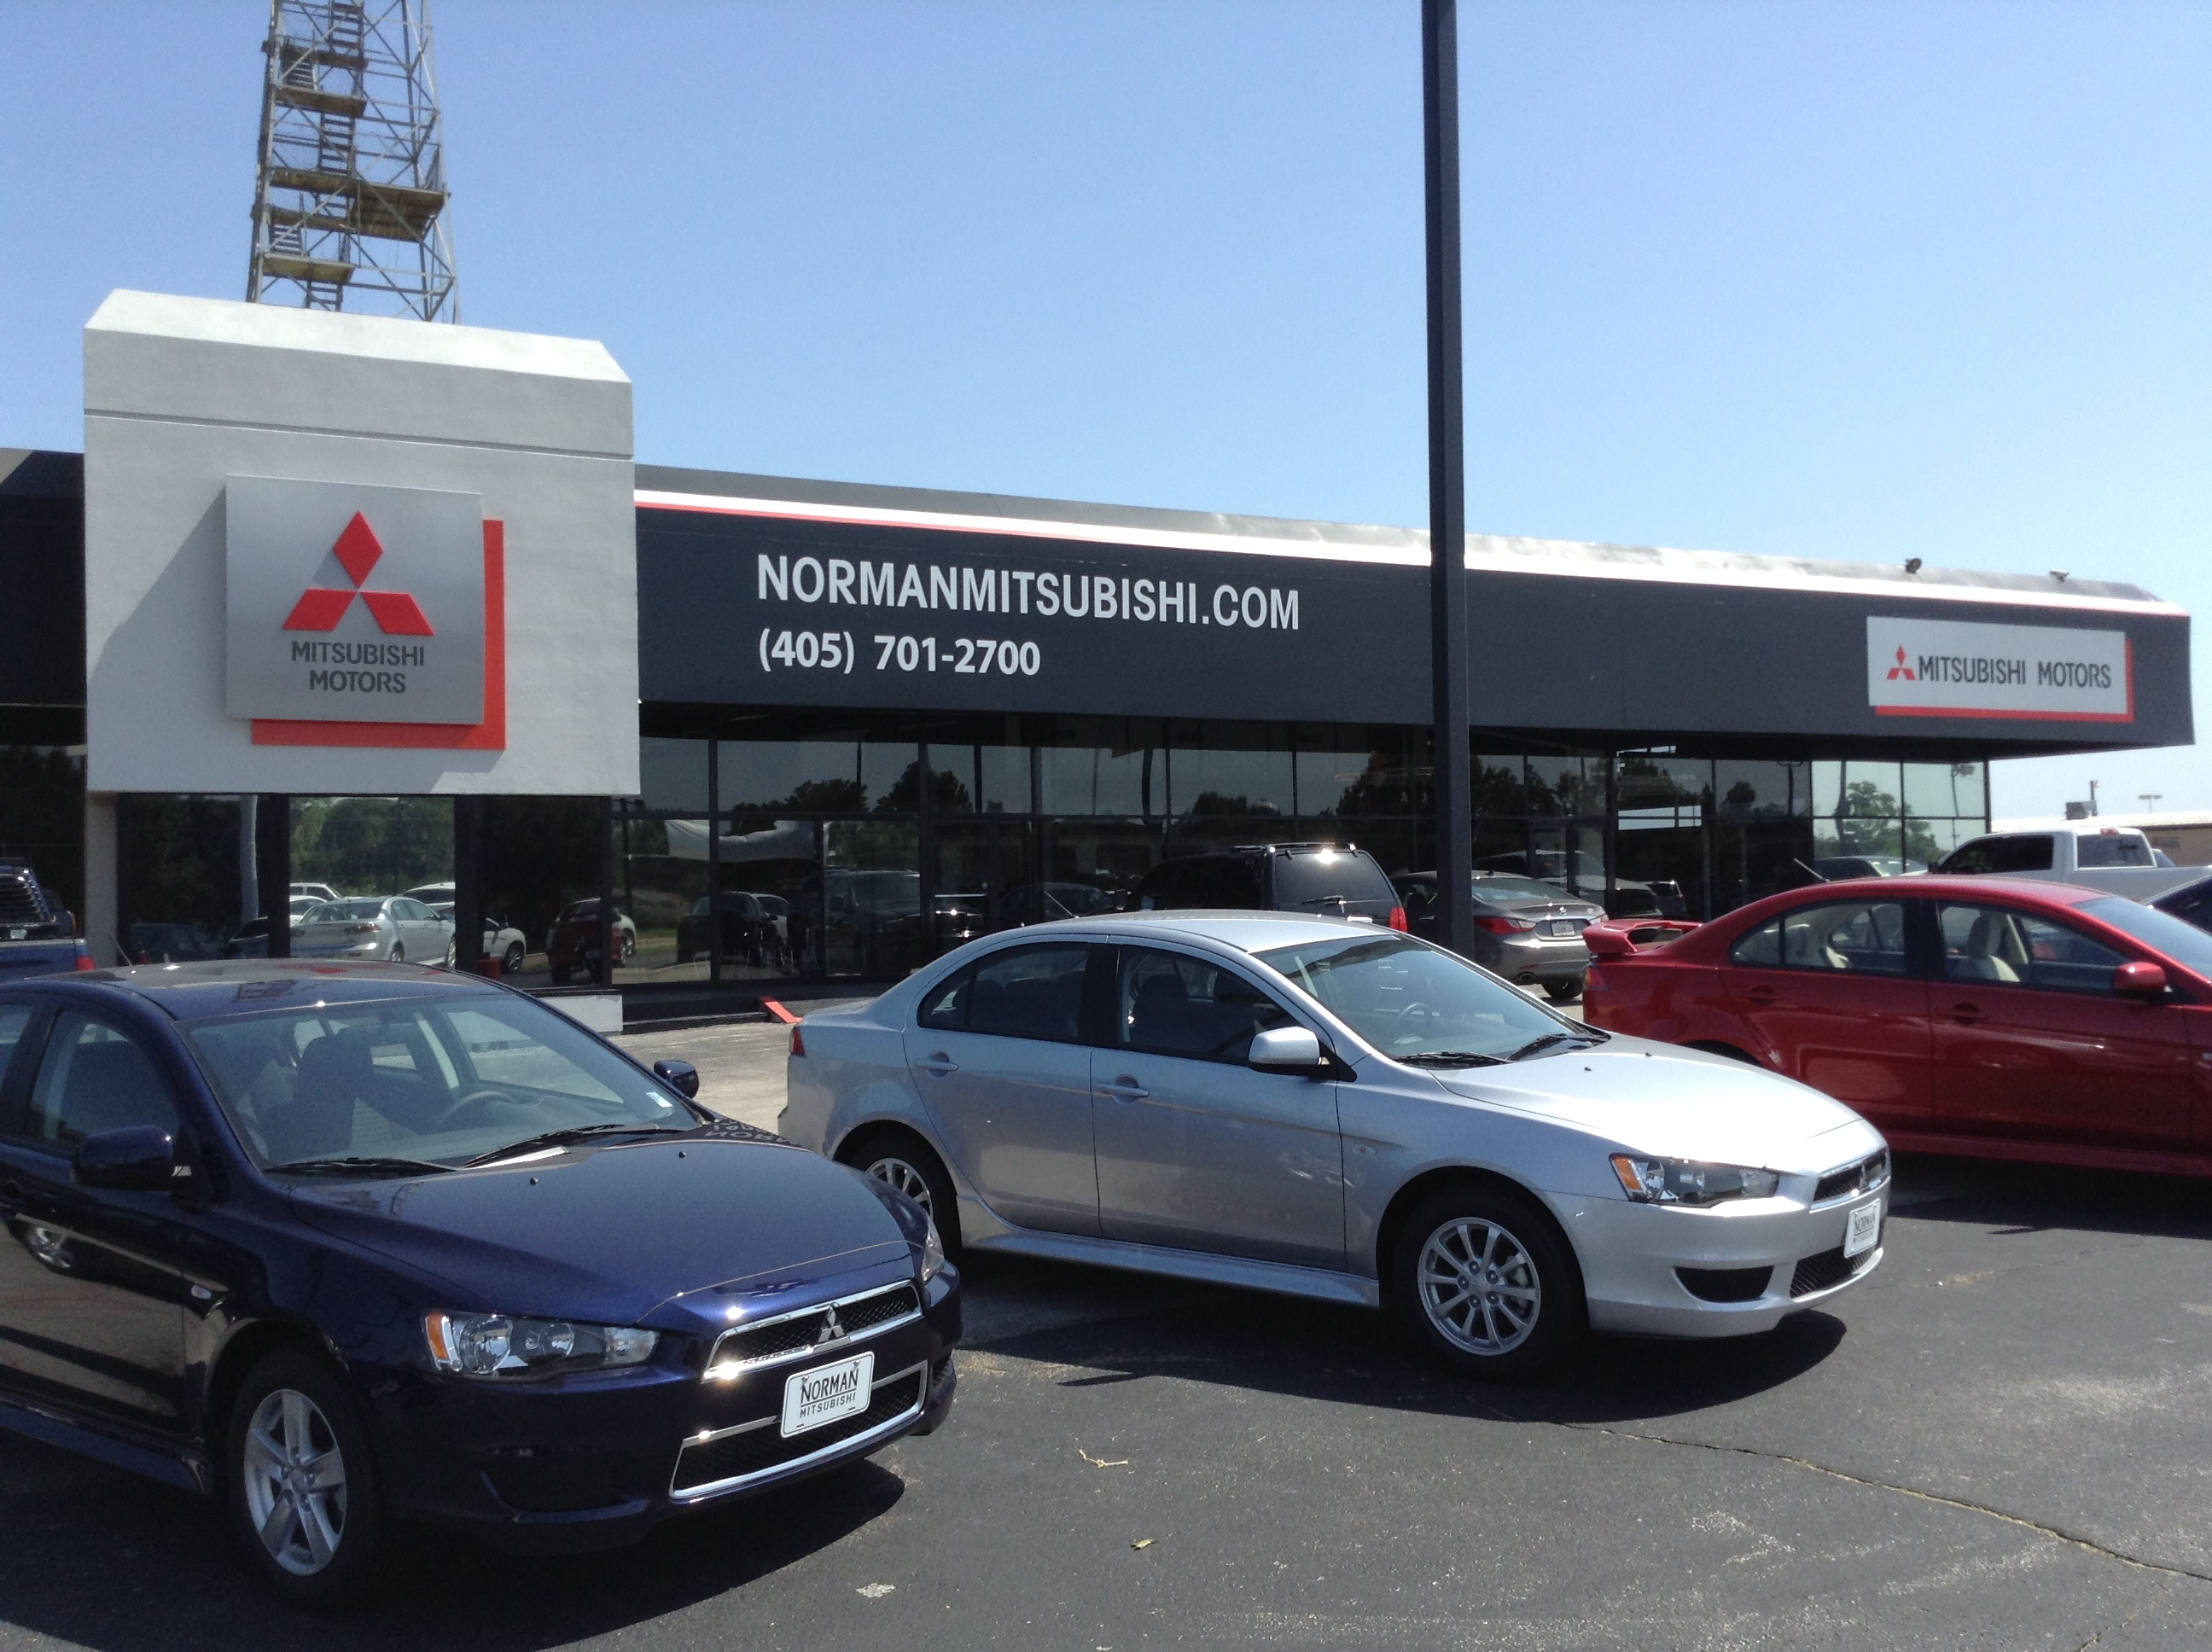 Car Dealerships In Norman Ok >> Norman Mitsubishi in Norman, OK 73069 - ChamberofCommerce.com